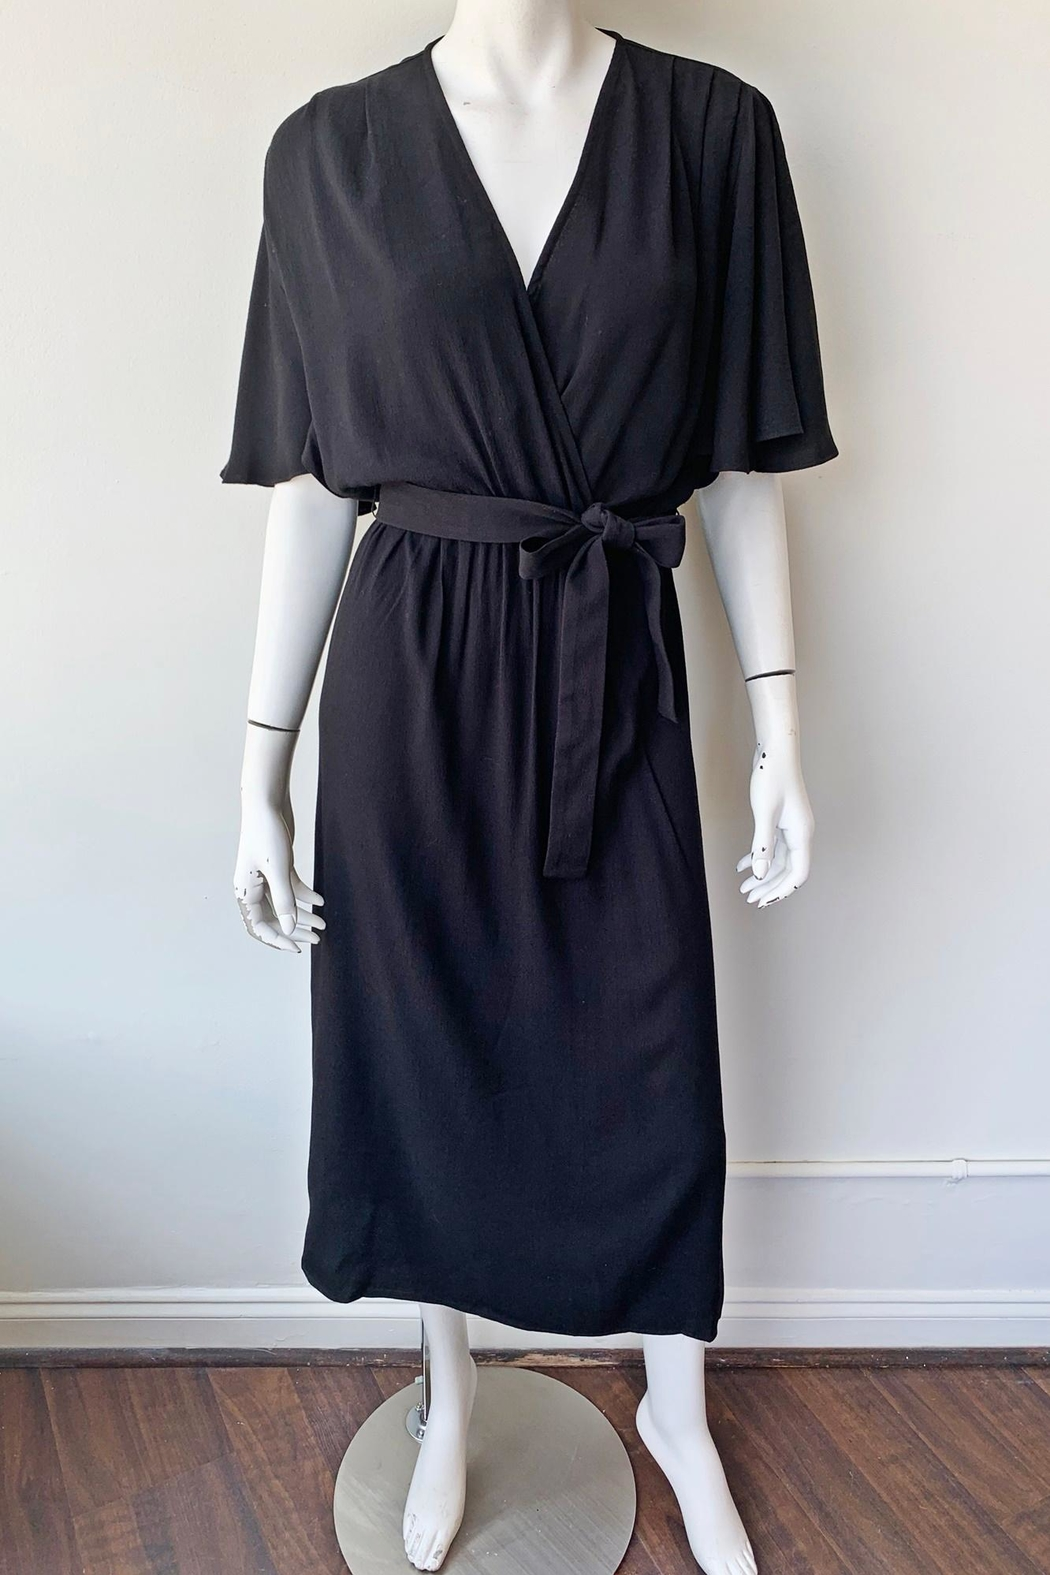 Emerson Fry Lila Dress - Front Full Image